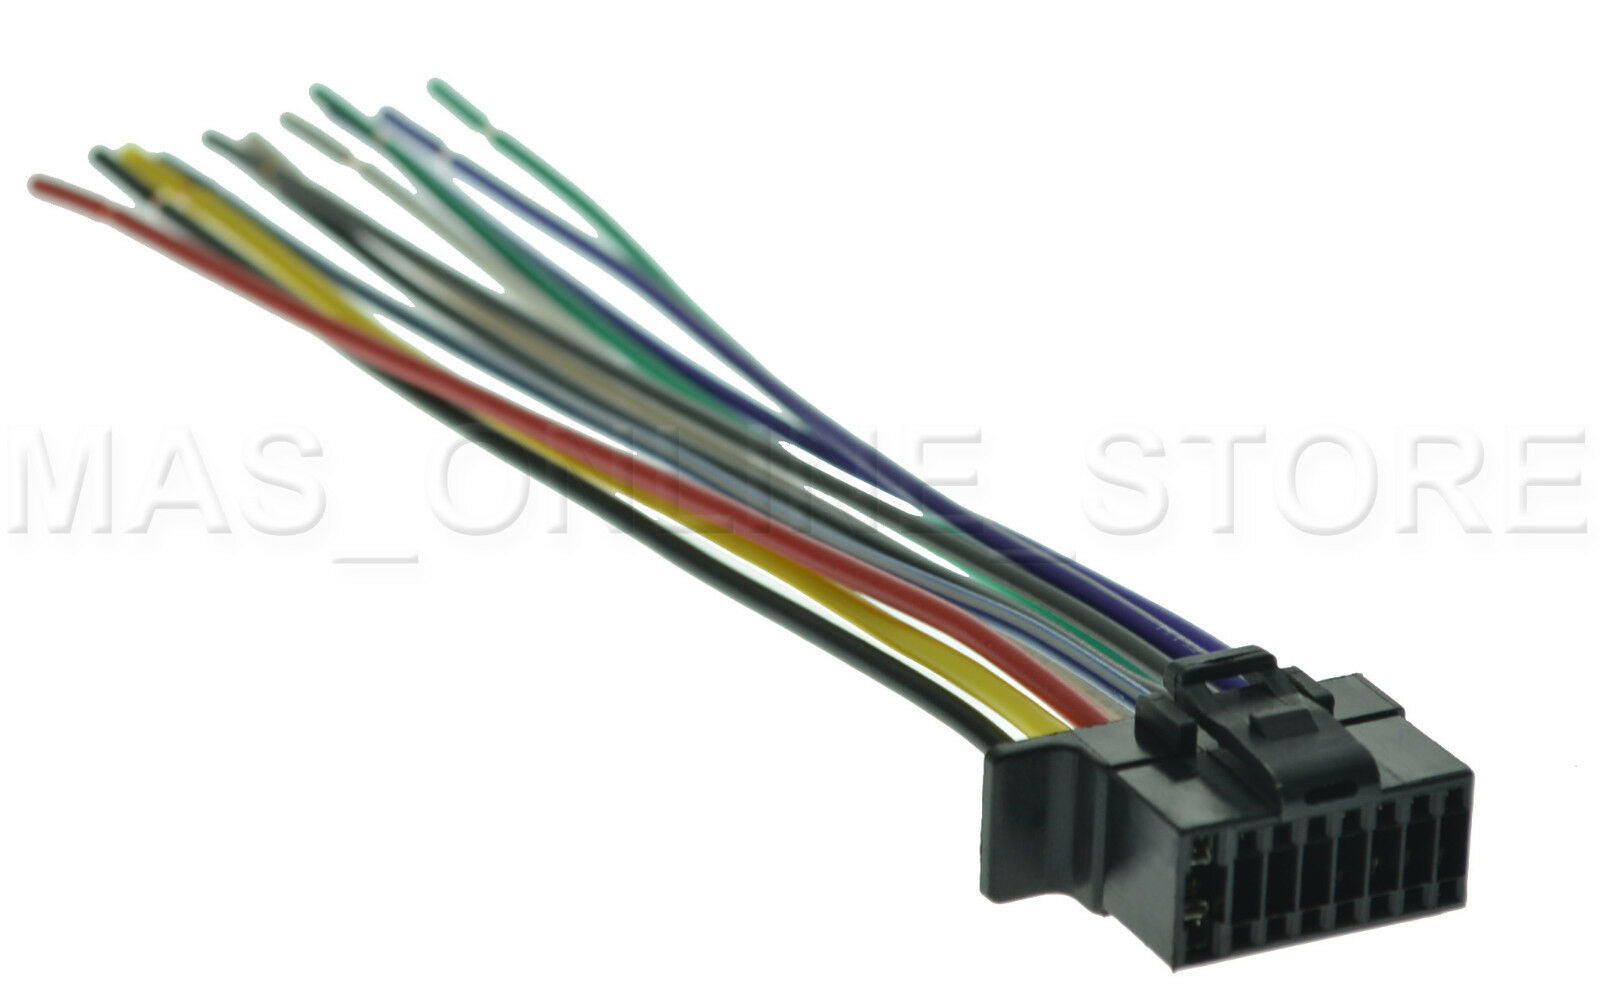 s l1600 wire harness for sony mexn5100bt mex n5100bt *pays today ships  at edmiracle.co